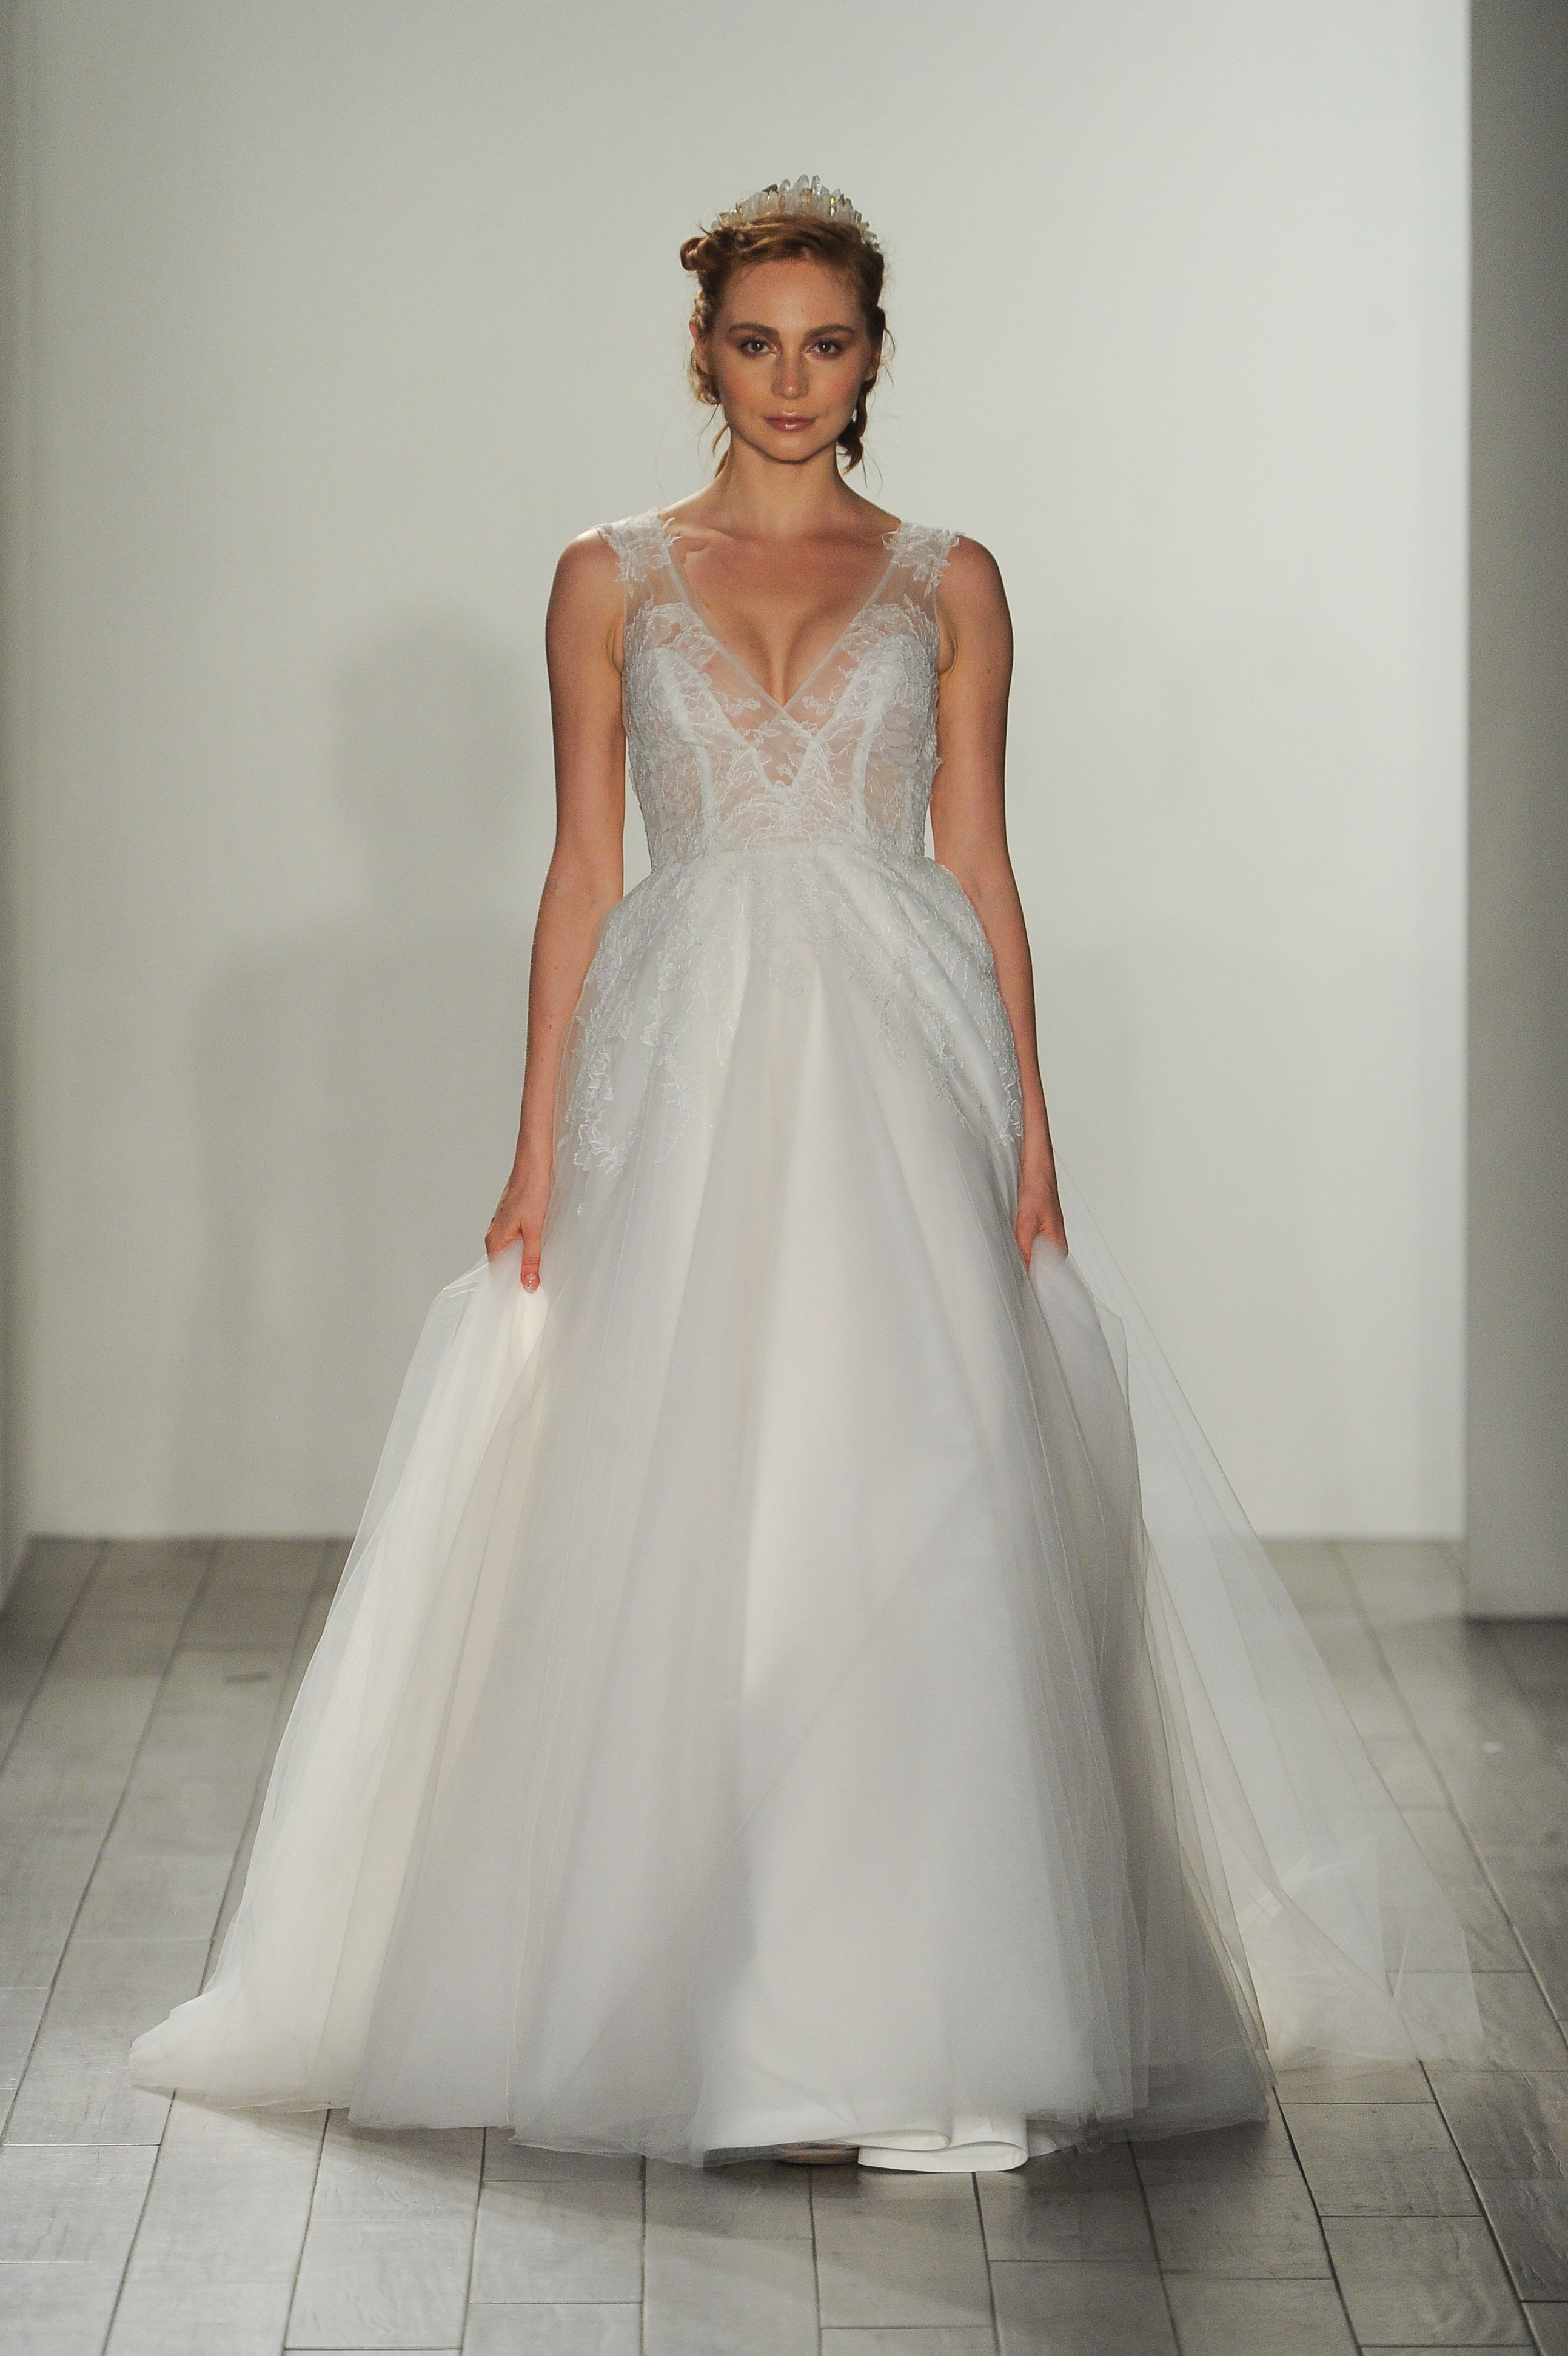 Stunning wedding dresses  These Are the Prettiest Wedding Dresses from Fall  Bridal Week